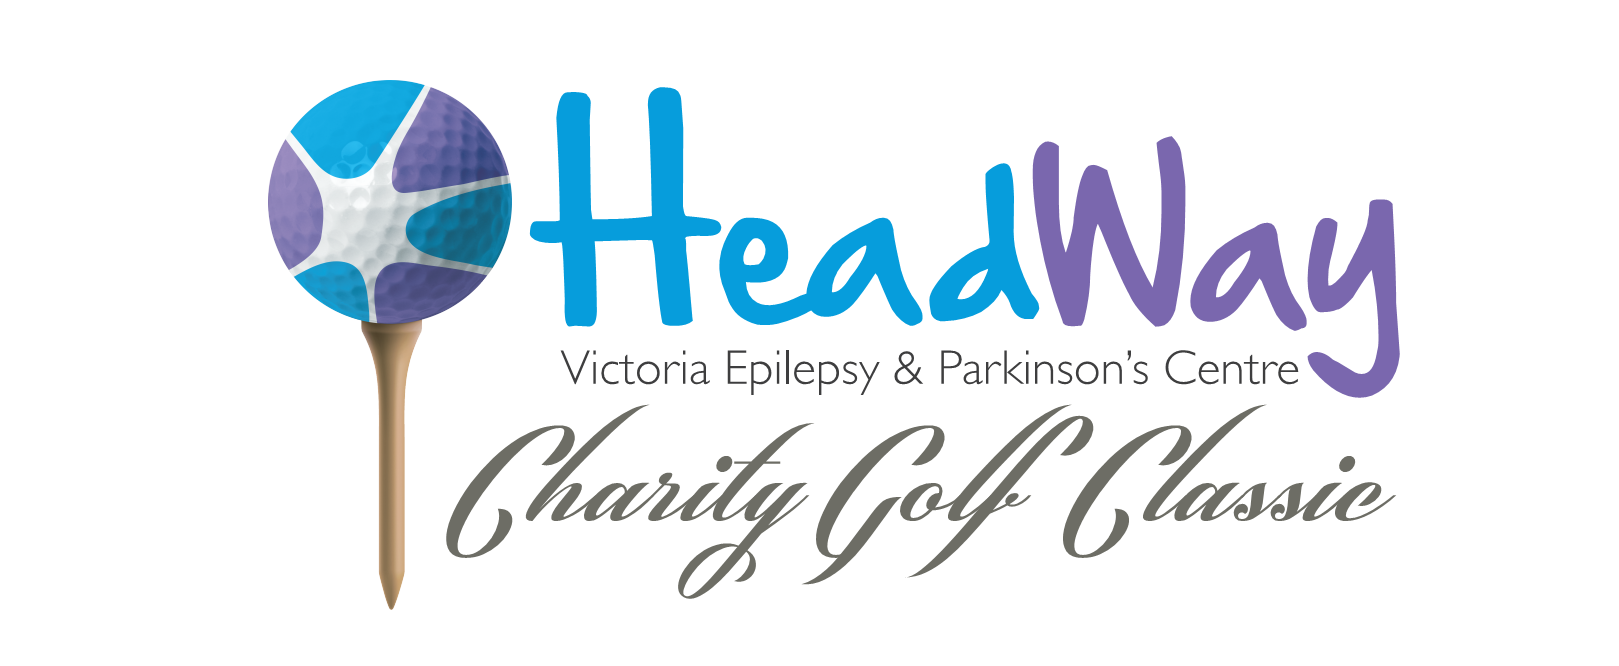 HeadWay Charity Golf Classic logo